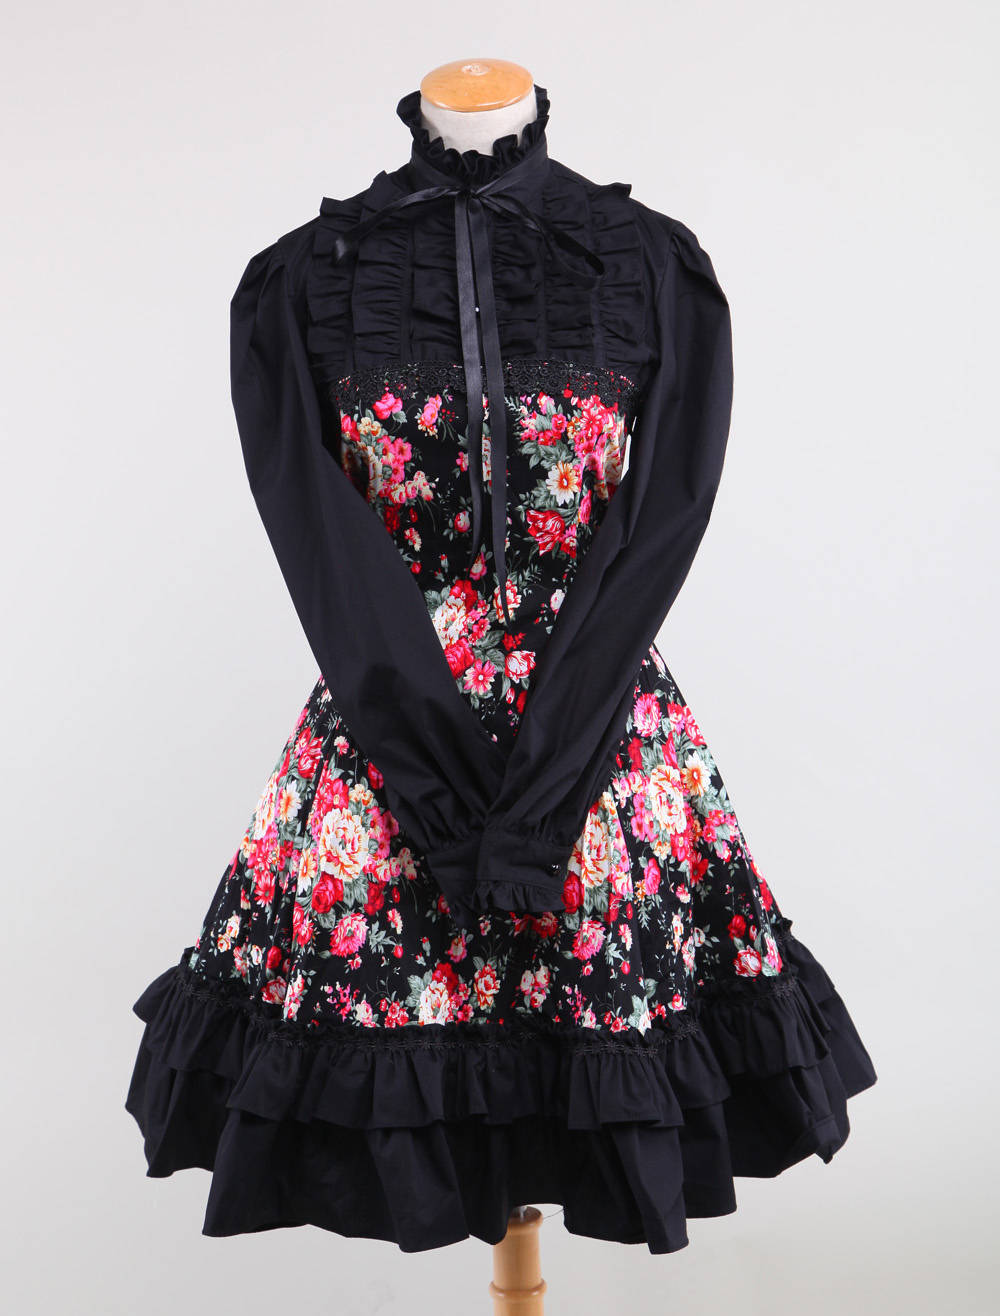 Buy Black Floral Sweet Stand Collar Long Sleeves Cotton Lolita Dress for $89.99 in Milanoo store